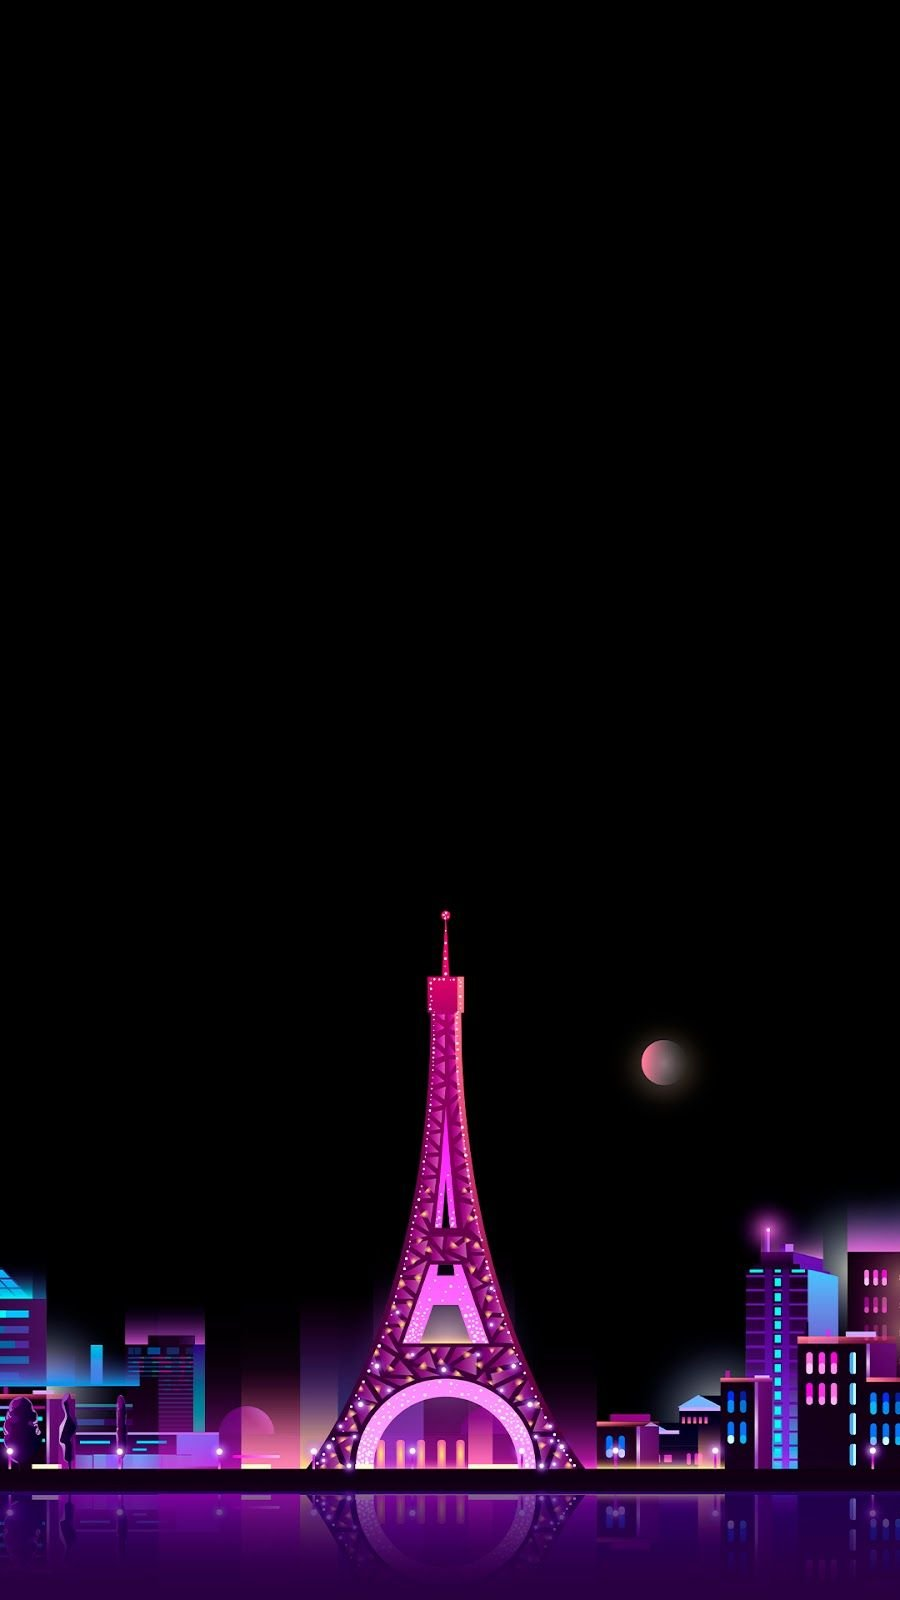 Pink Eiffel Tower Wallpapers Top Free Pink Eiffel Tower Backgrounds Wallpaperaccess